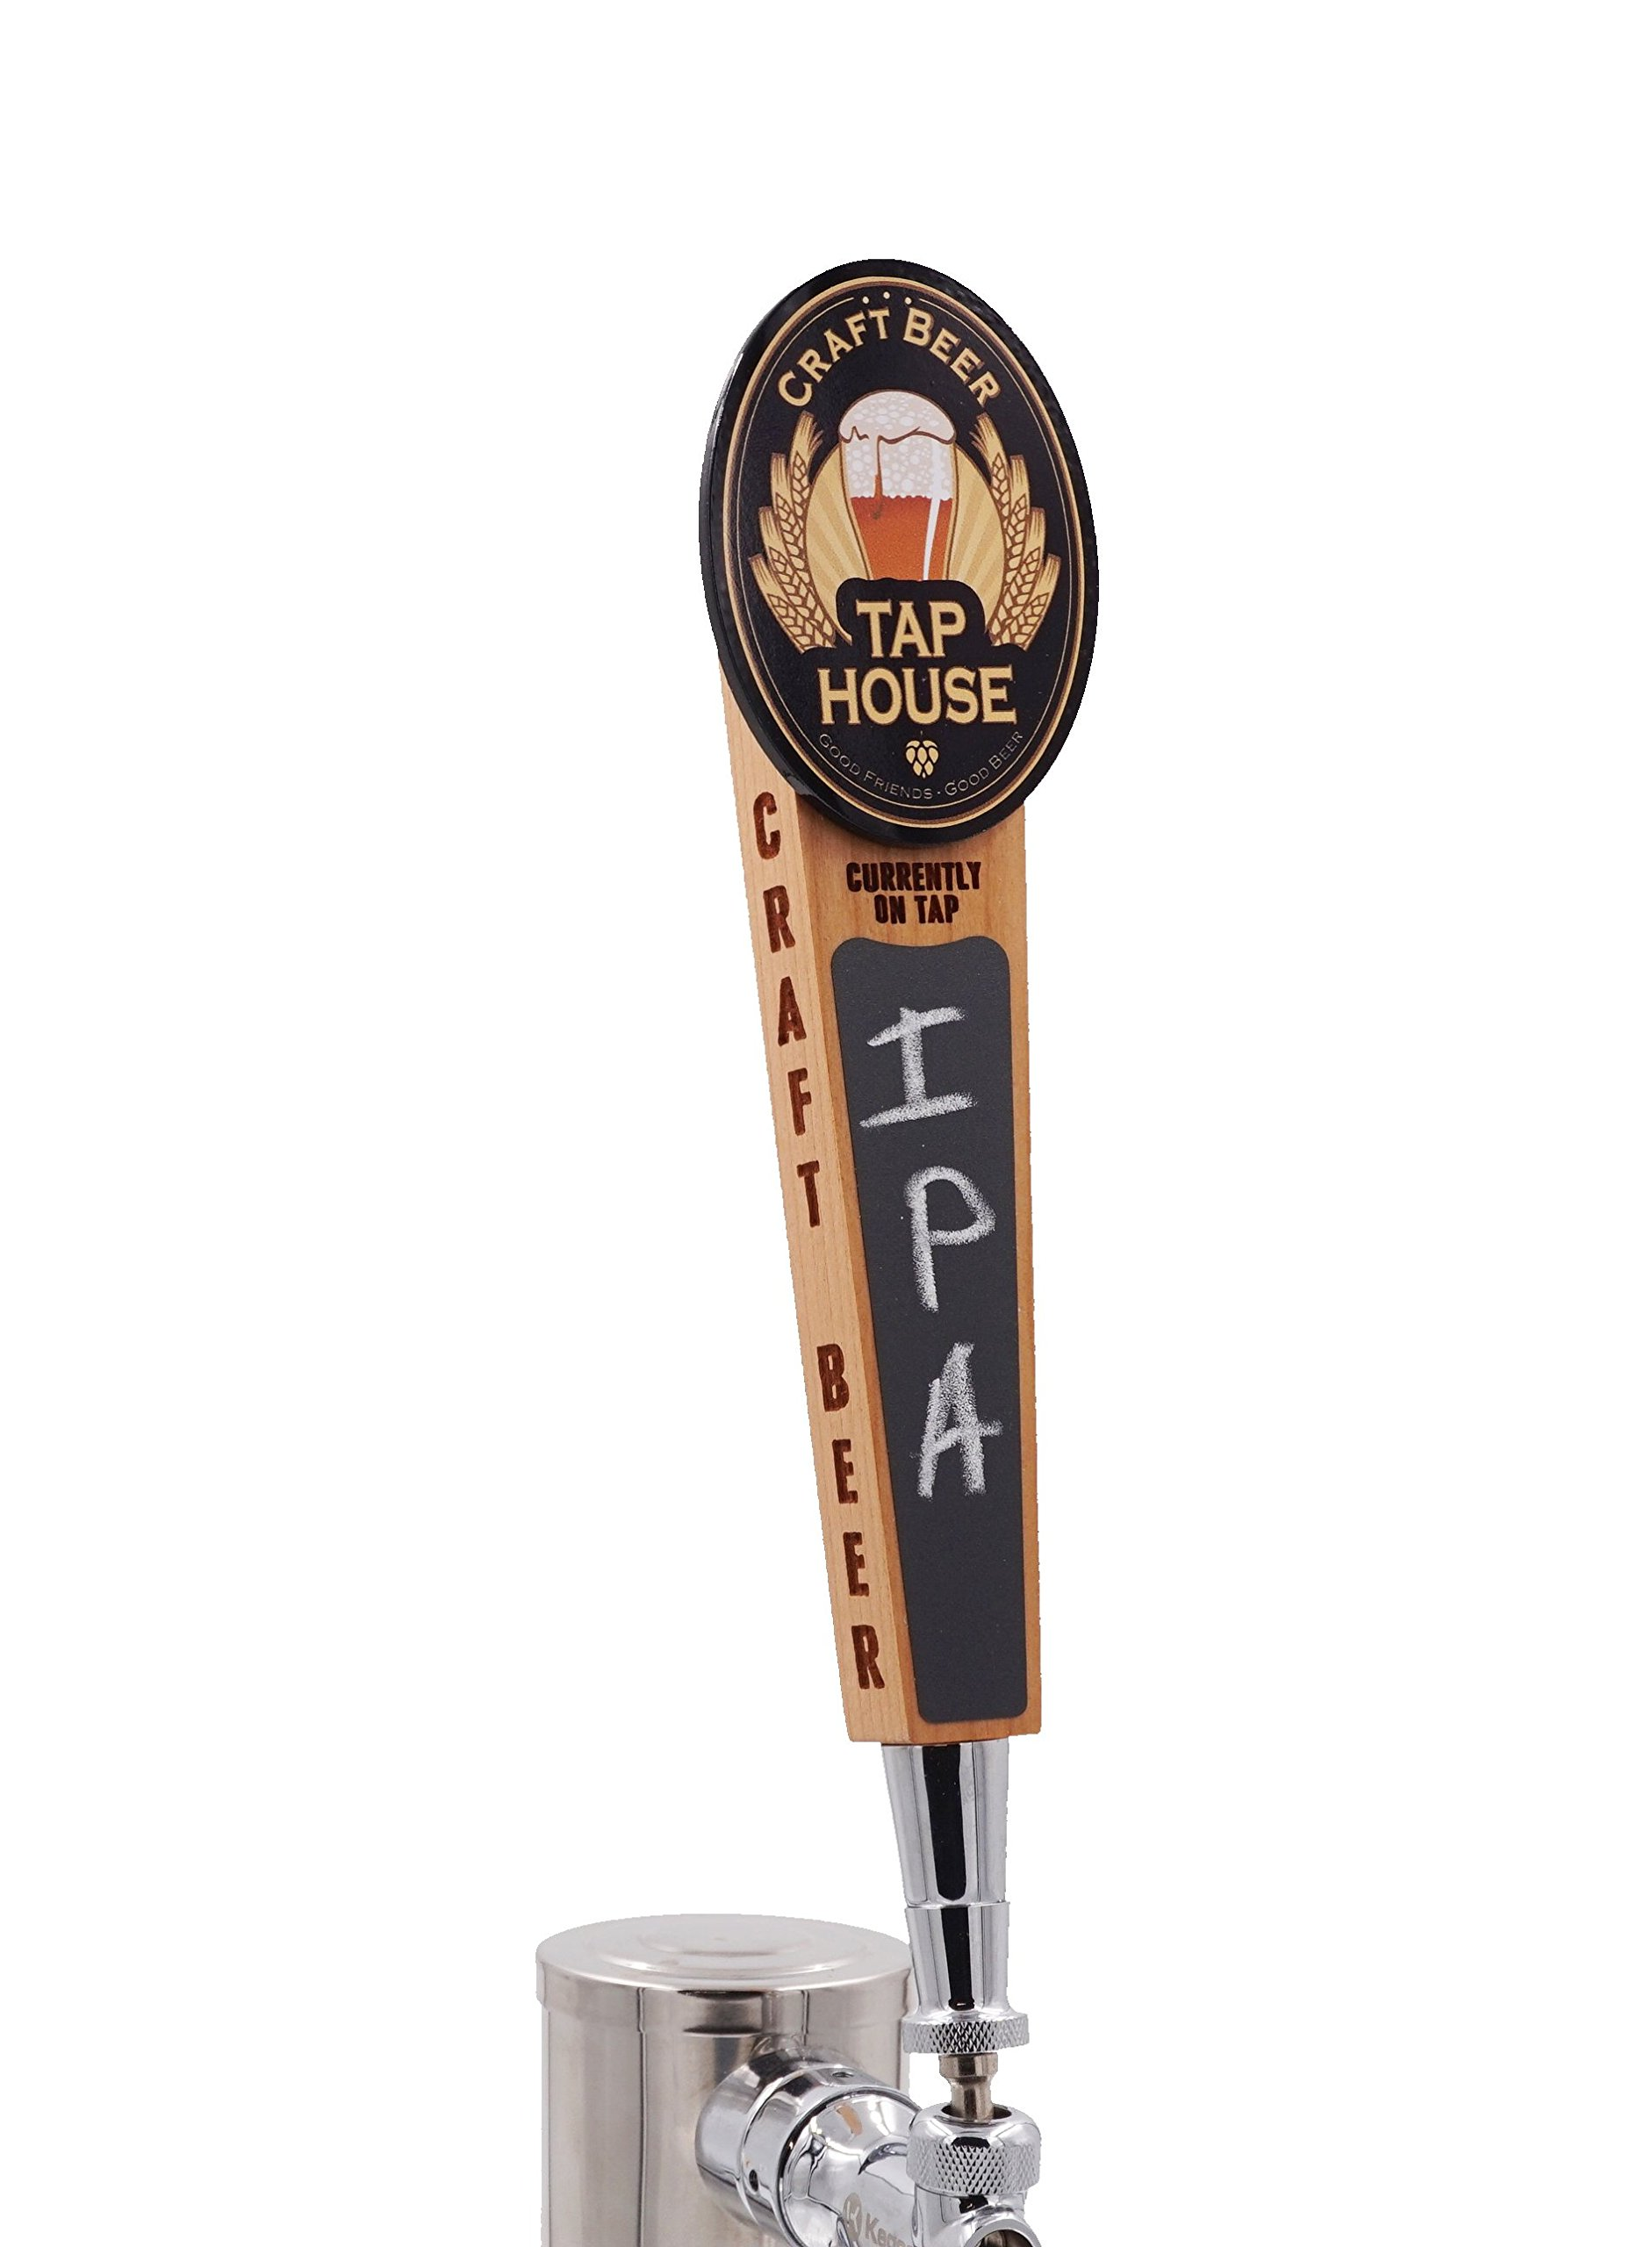 Beer Tap Handle with Chalkboard-Tap House Edition. Cool wood tap with laser engraved sides and full color logo.